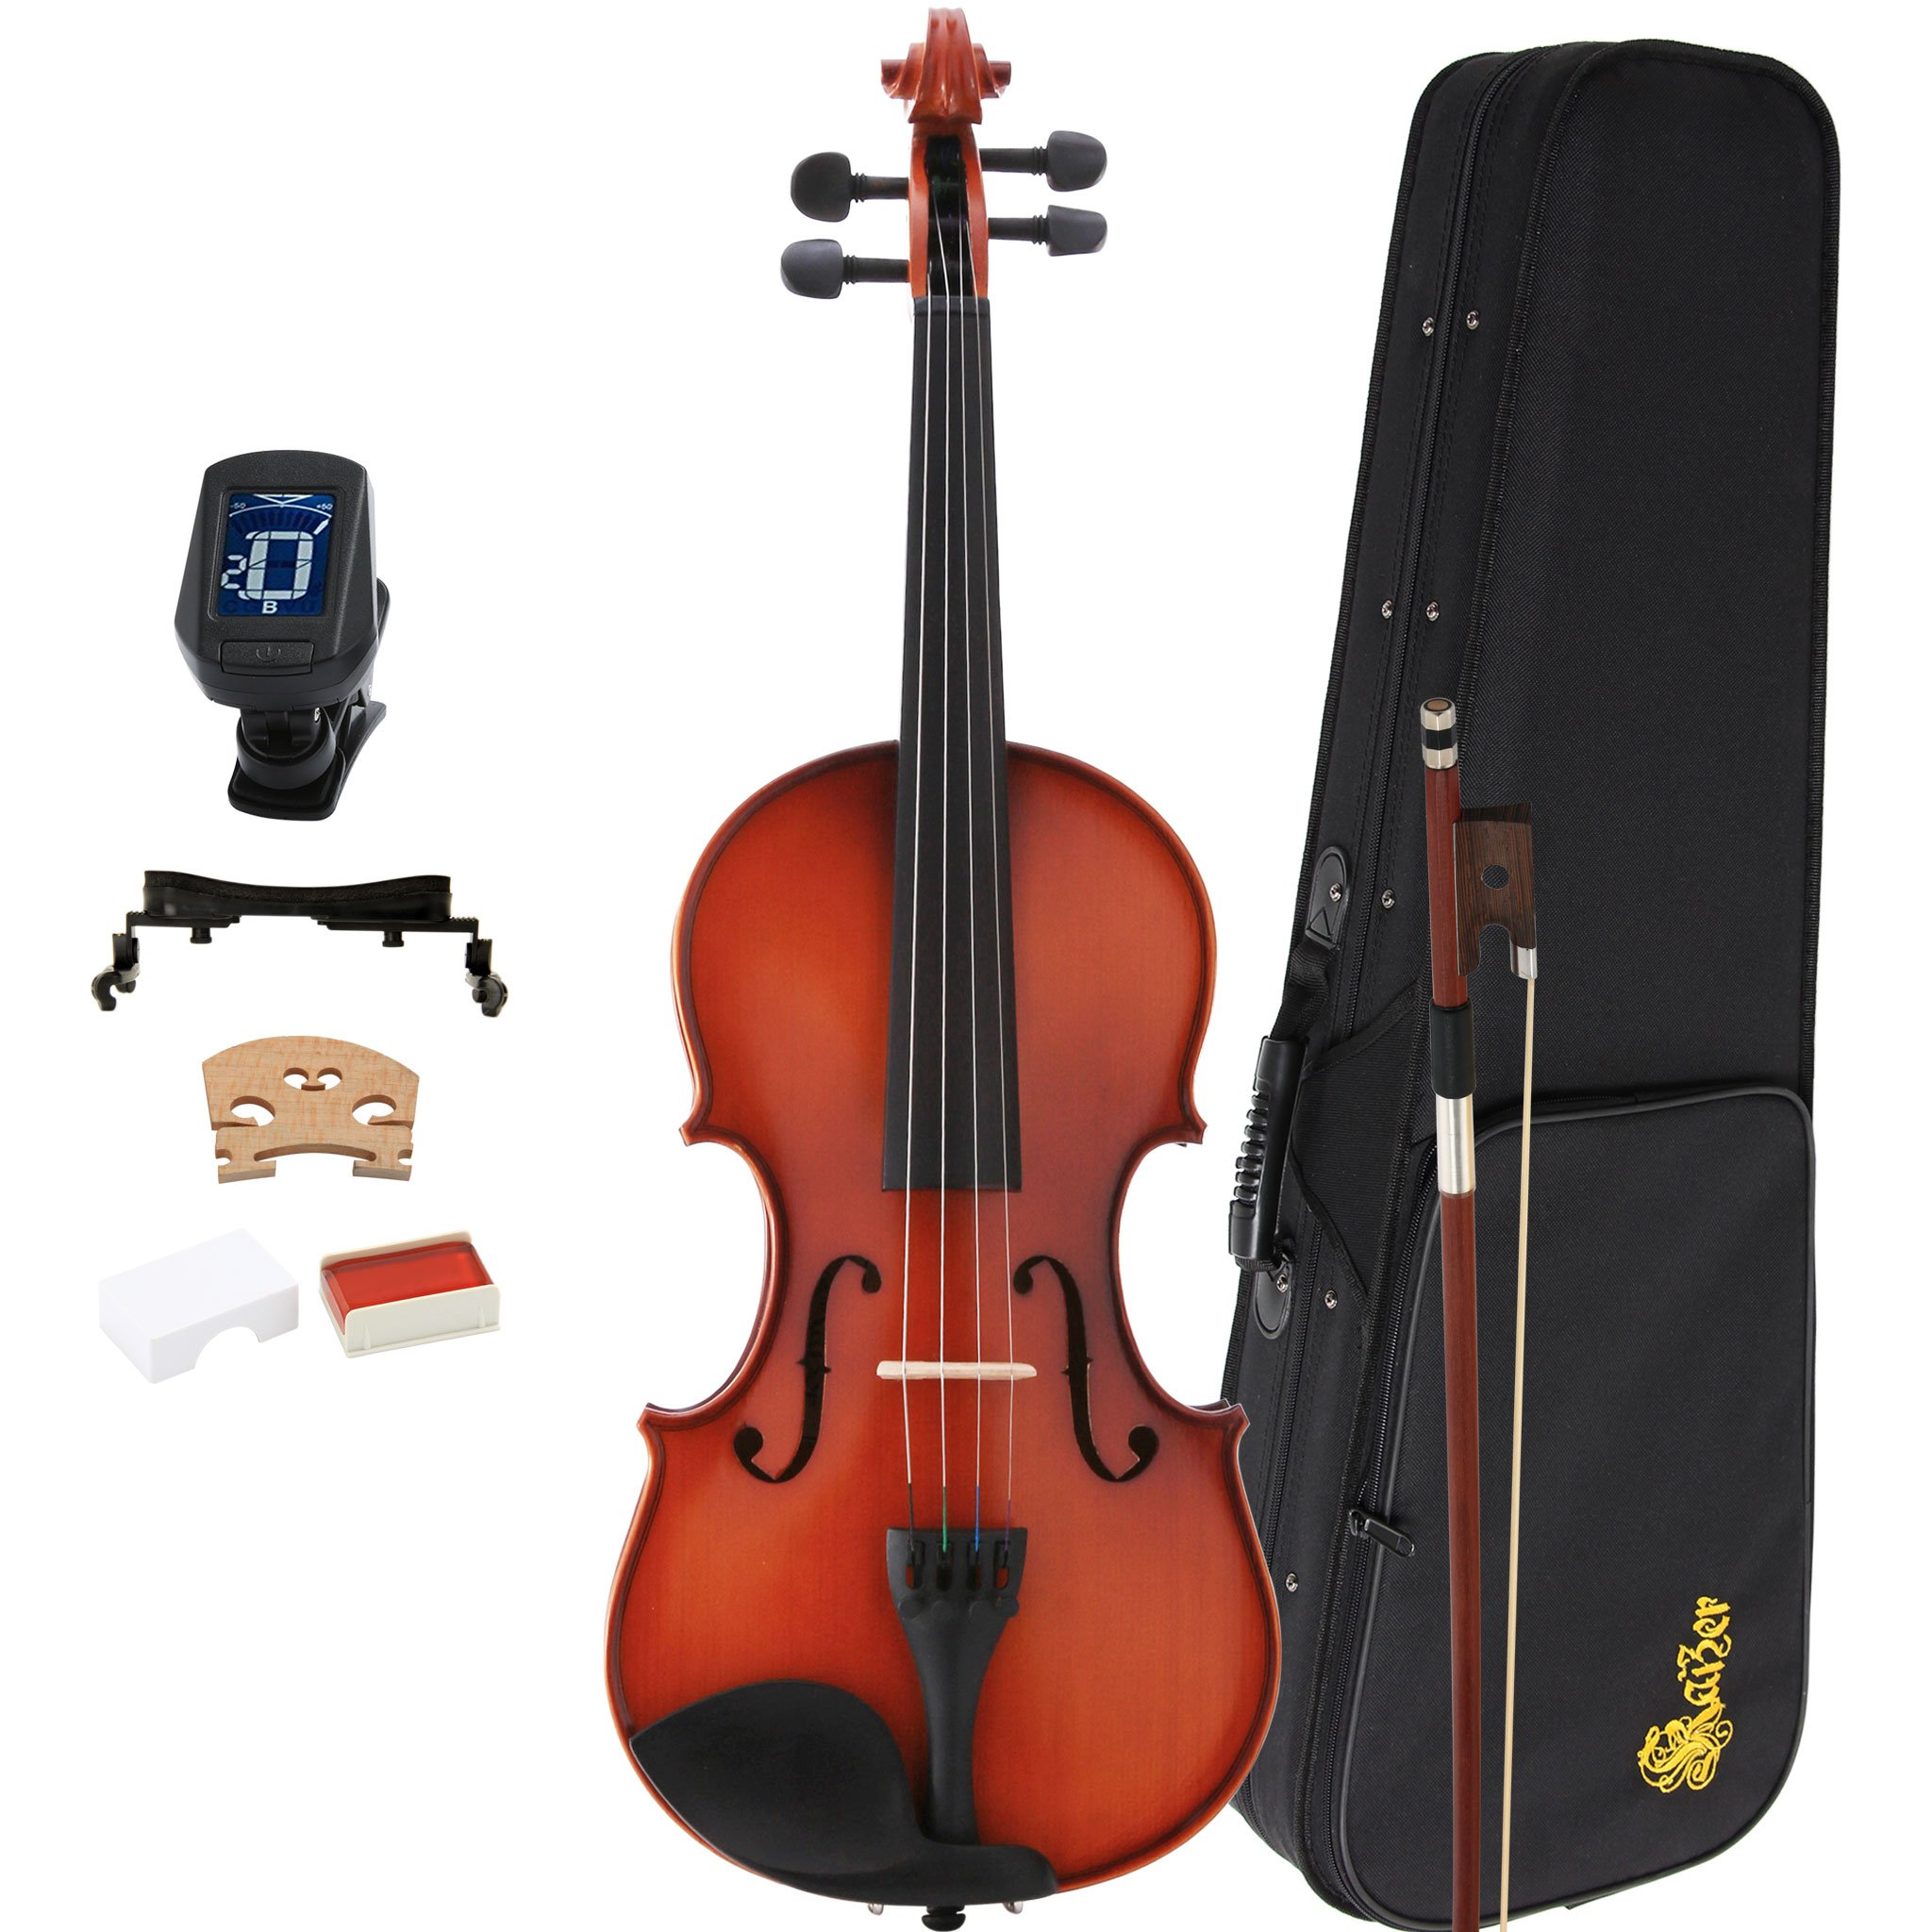 Kaizer Violin Acoustic Full Size 4/4 Antique Satin Includes Case Bow Tuner and Accessories VLN-1000ST-4/4-TNR by Kaizer